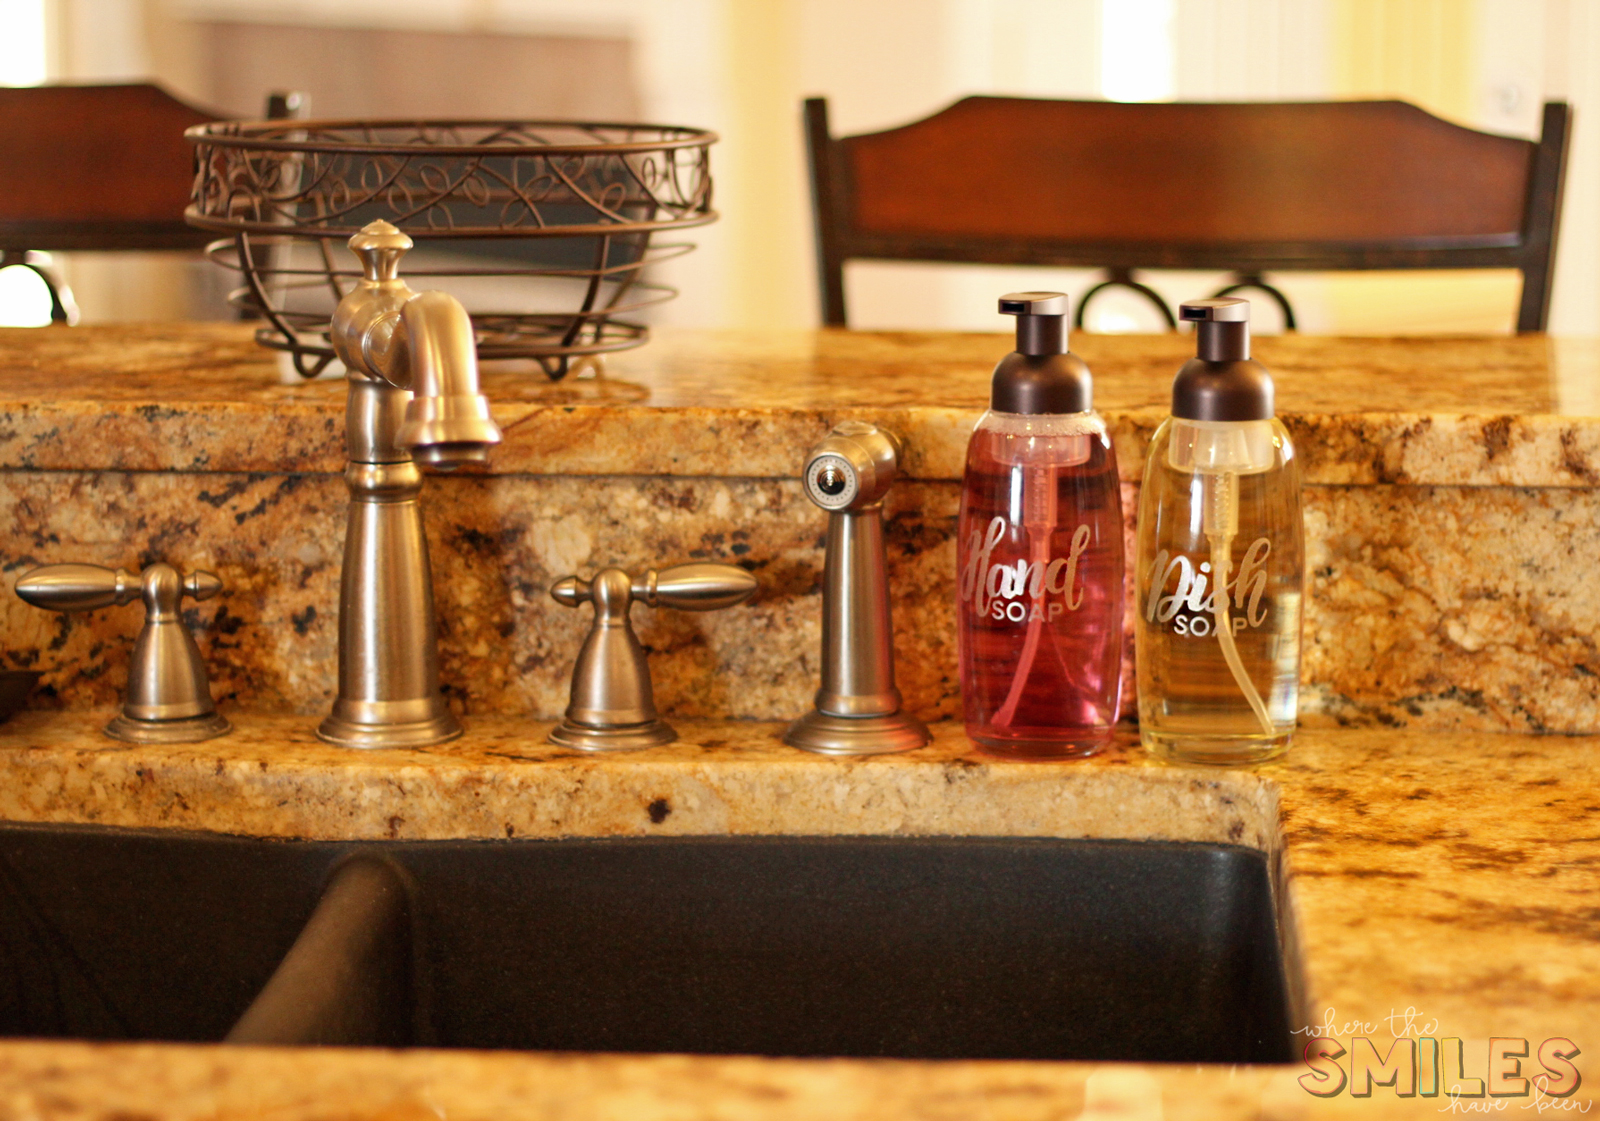 Pretty Foaming Soap Dispensers with Etched Glass Vinyl decals sitting near kitchen sink